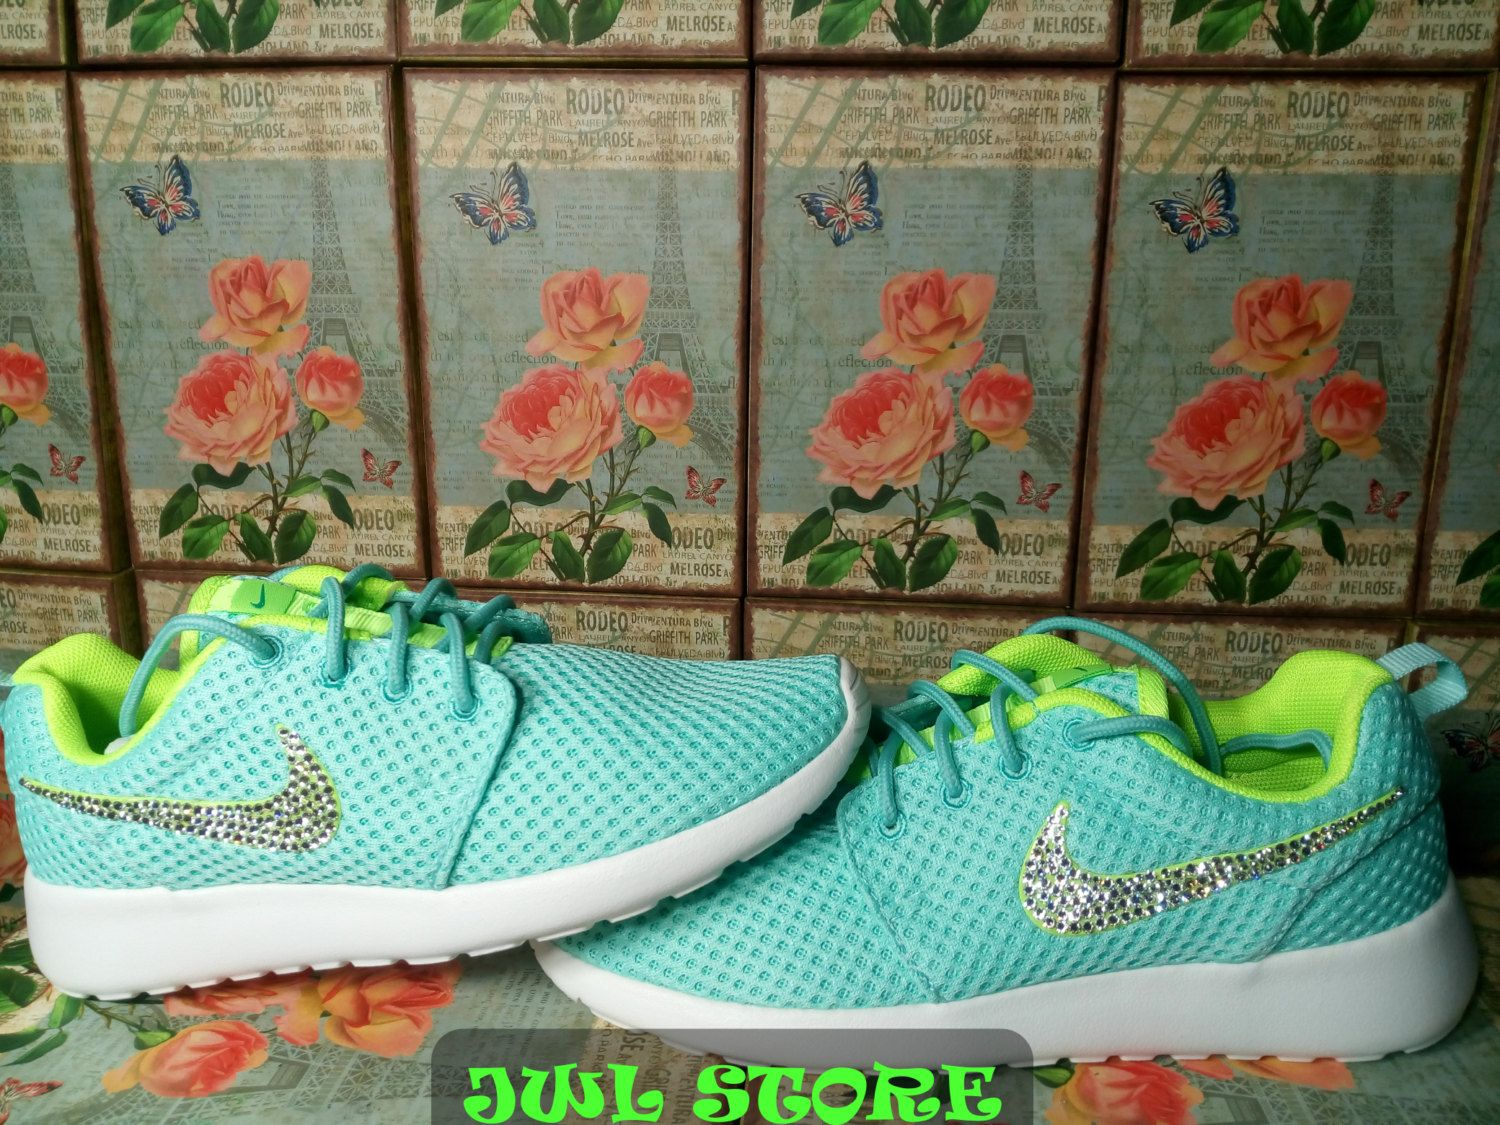 3f2caf96d950 sale 20% off last pair swarovski blinged nike roshe run women shoes light  green color customized with swarovski crystal athletic shoes by jwlstore on  Etsy